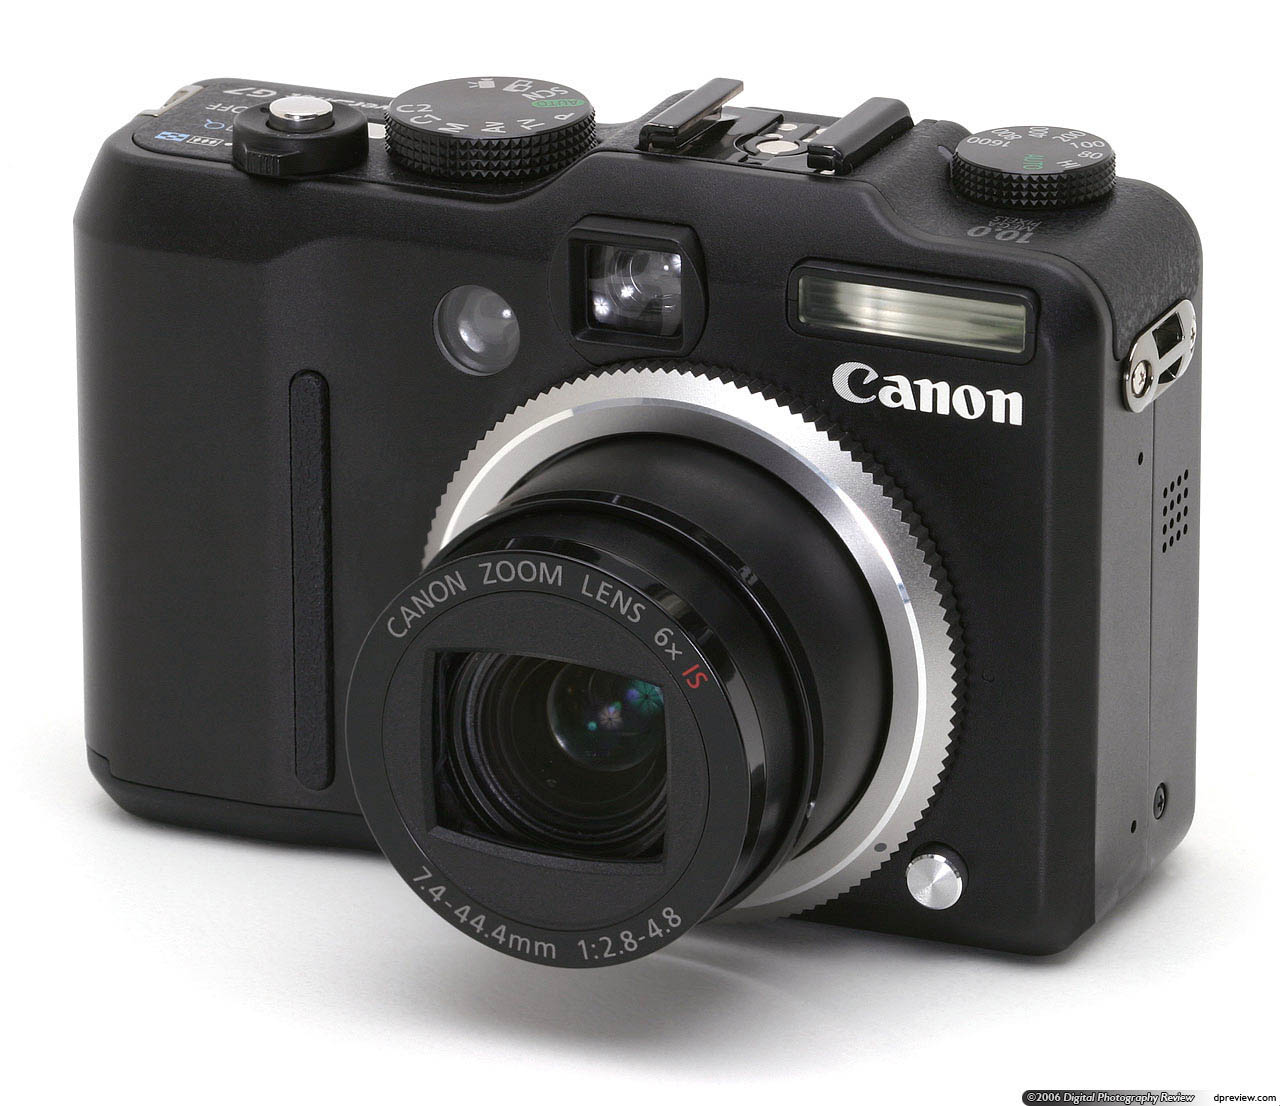 Canon PowerShot G7 Review: Digital Photography Review